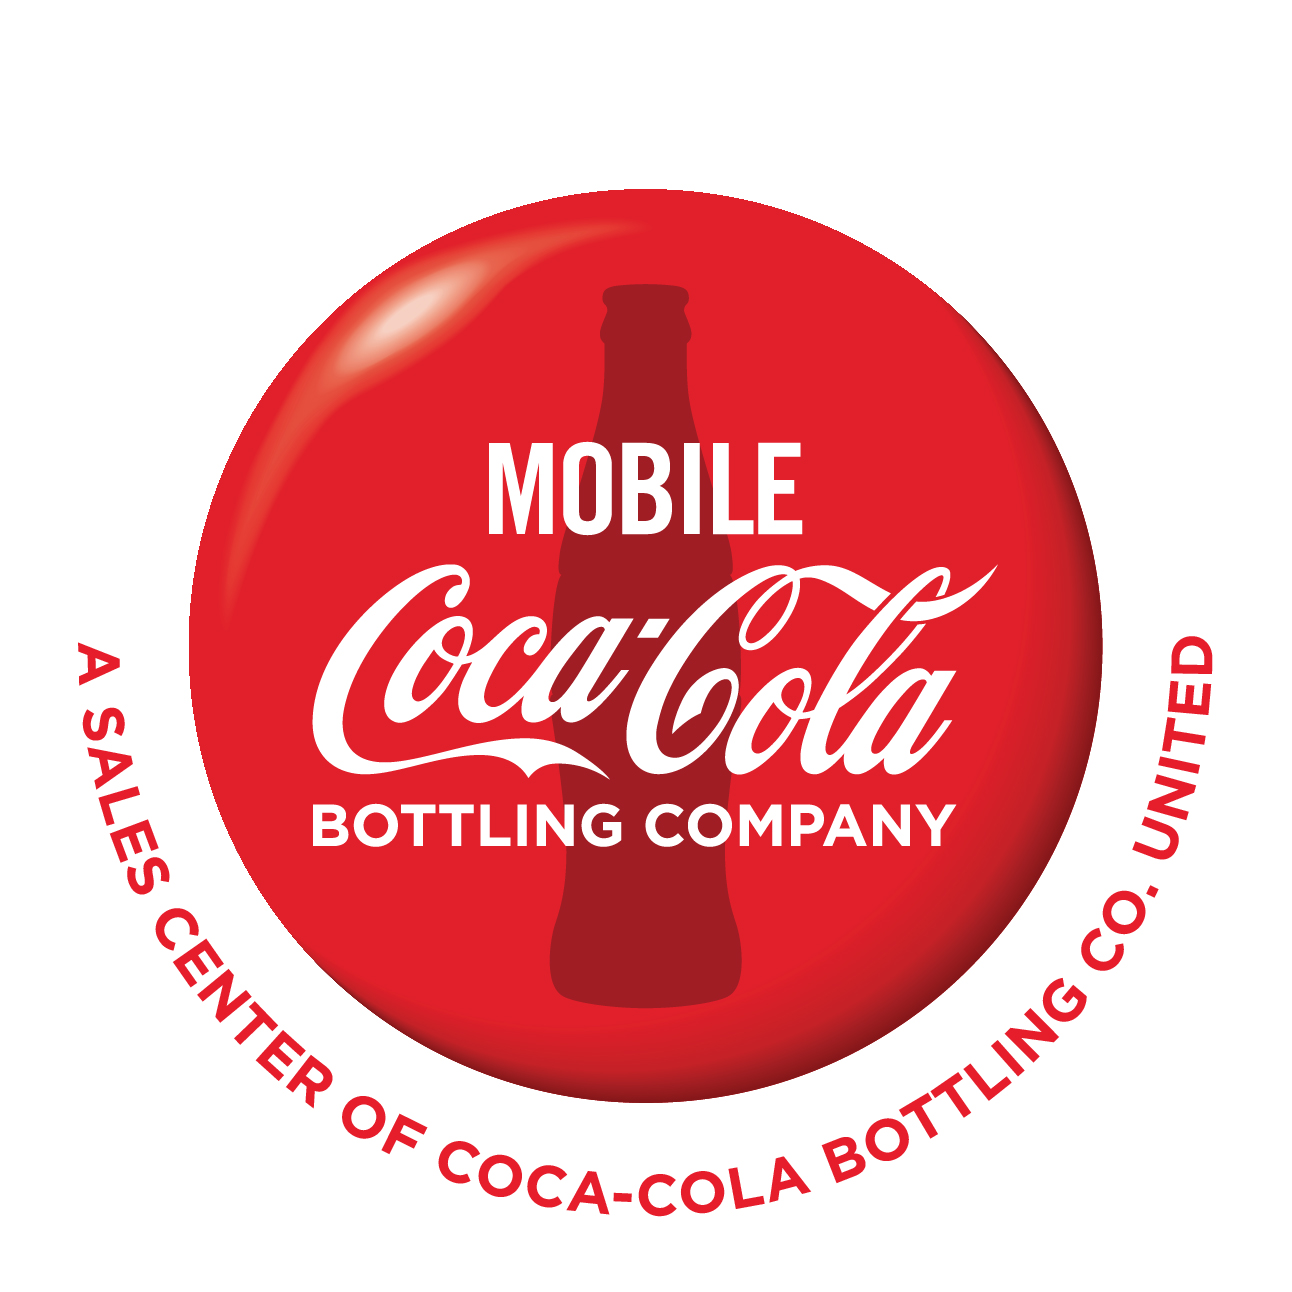 Internships in STEM presented by Mobile Coca Cola Bottling Company